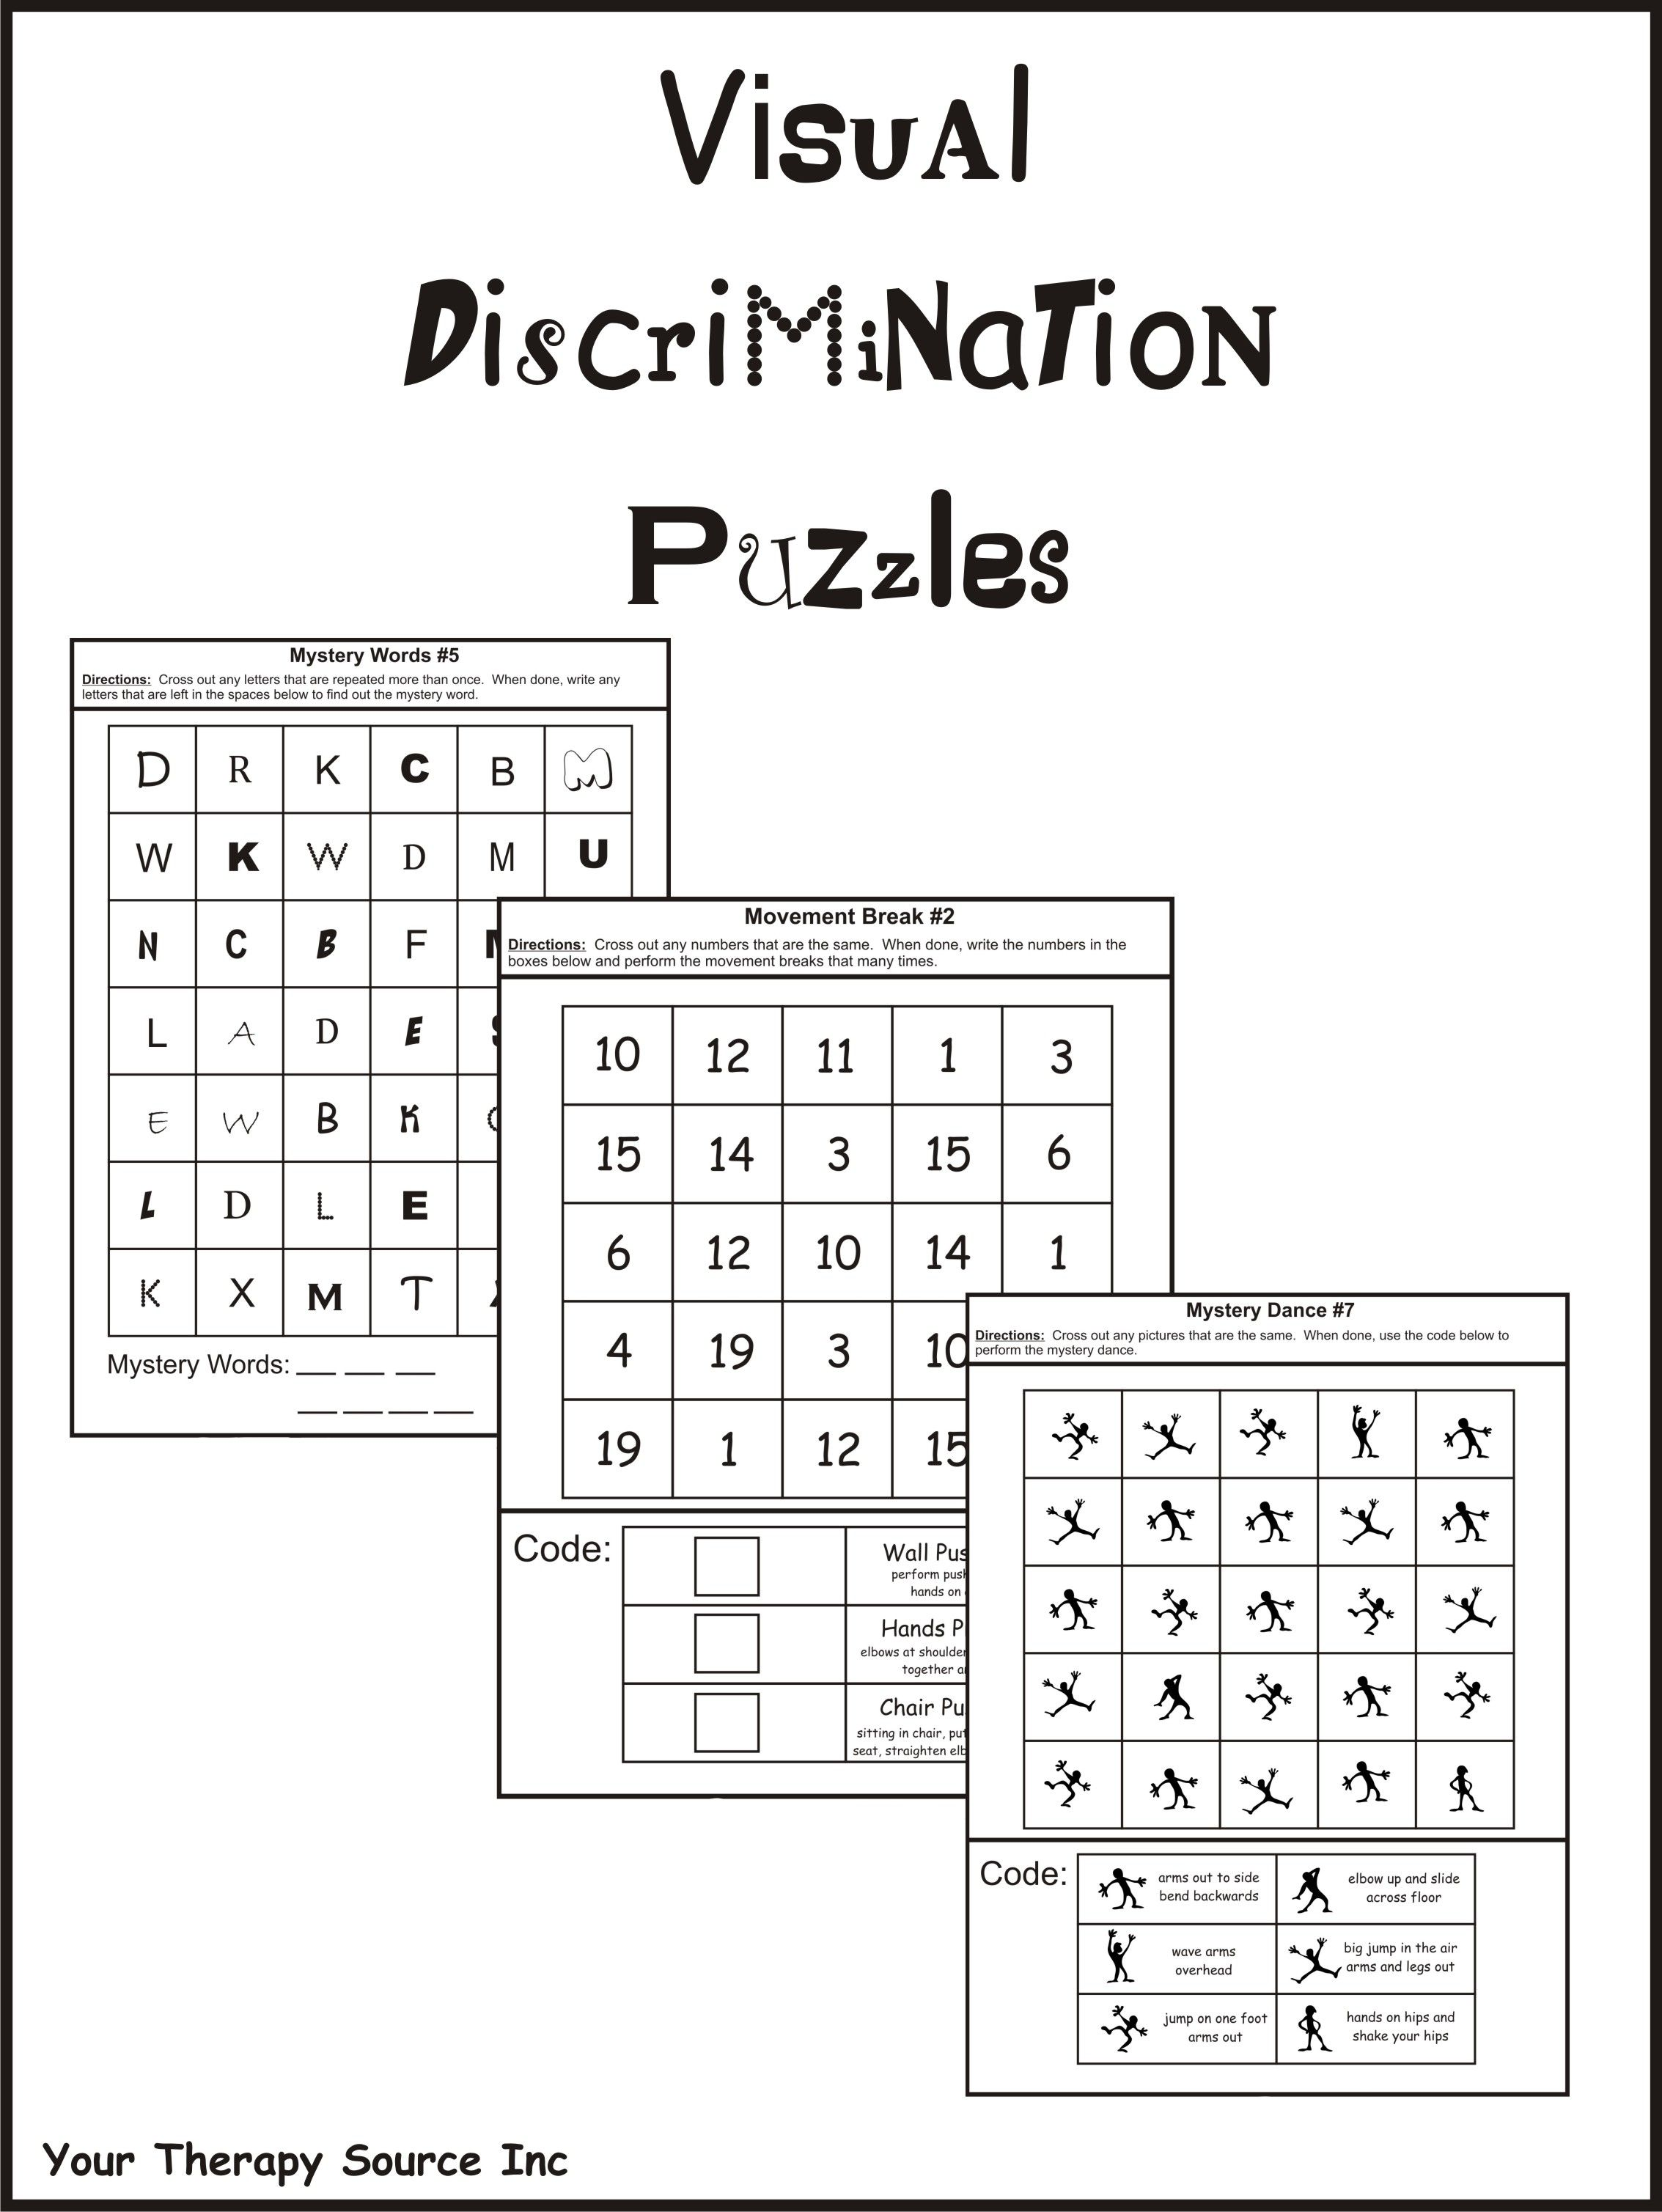 discrimination worksheet These worksheets will help your little learners practice visual discrimination skills they will be helpful for intervention or remediation in kindergarten or when introducing letters and numbers in pre-k learning to find little differences is a big part of learning to read.